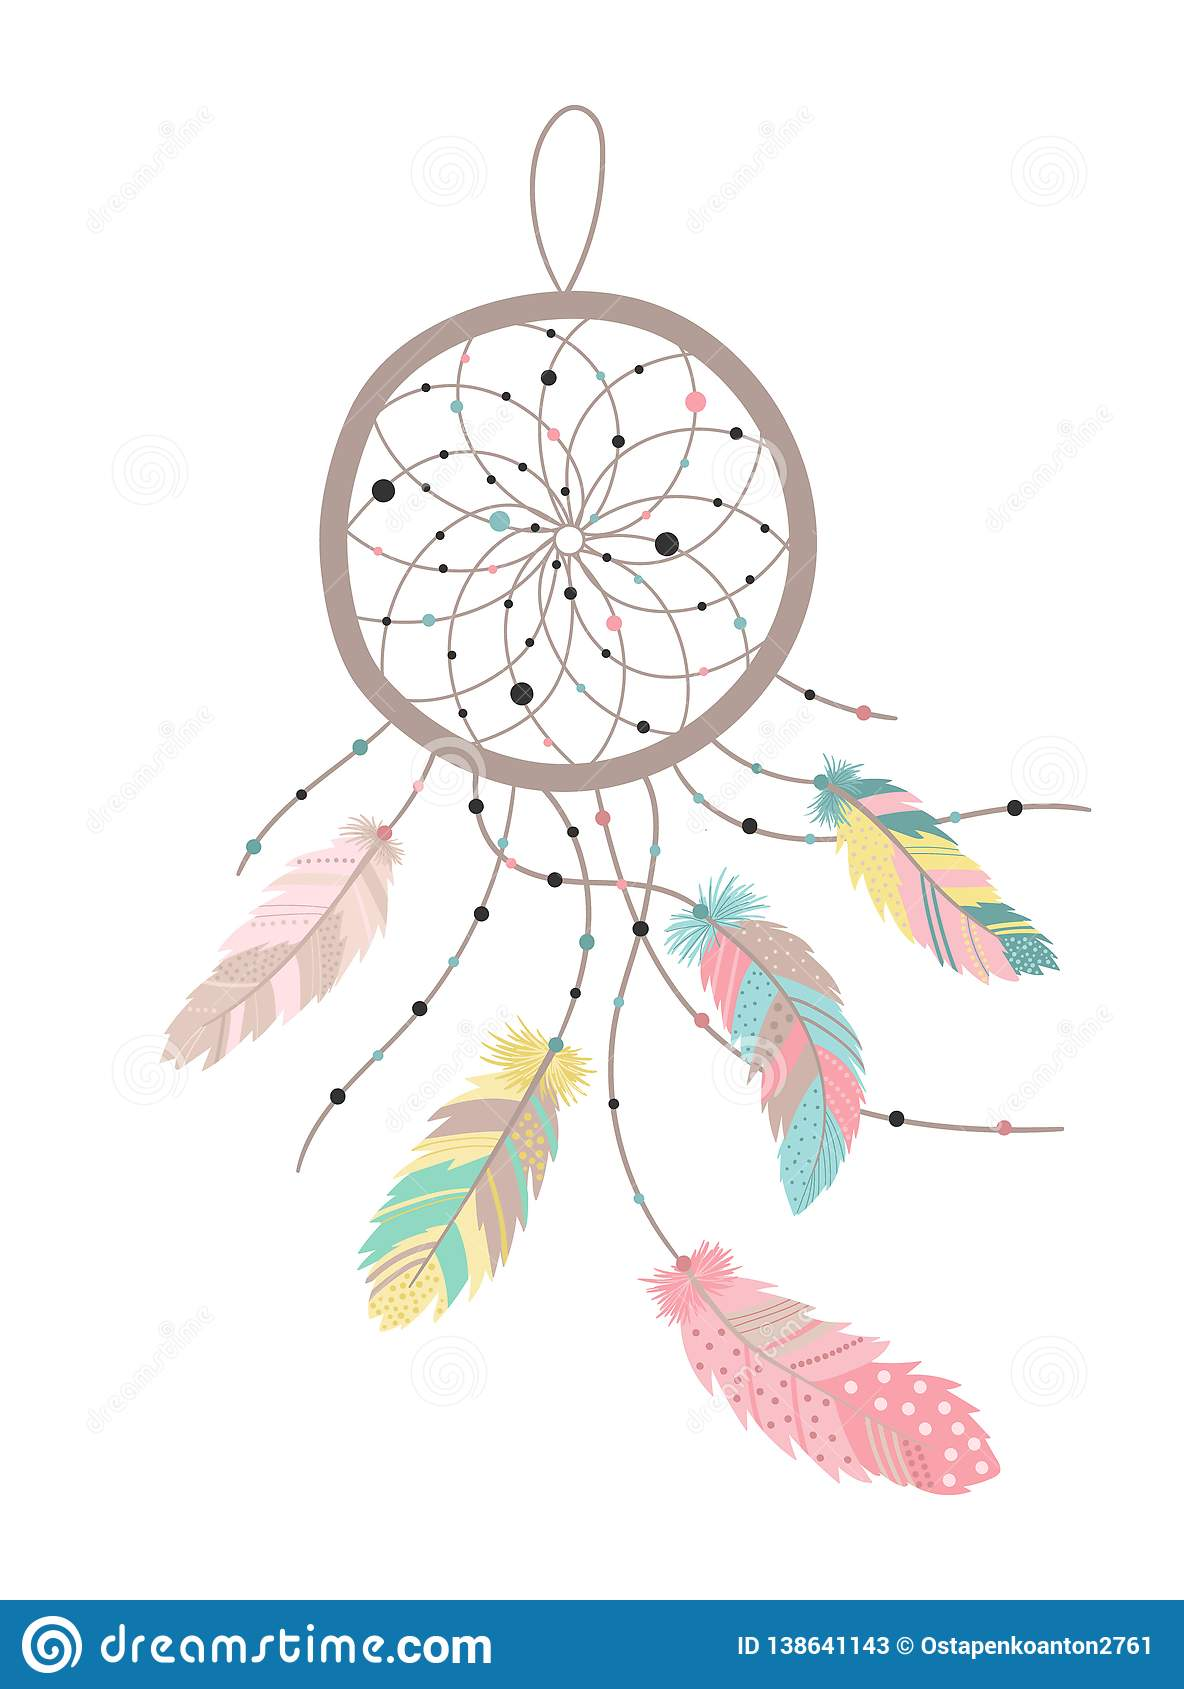 Vector image of a dreamcatcher in boho style with colorful feathers.